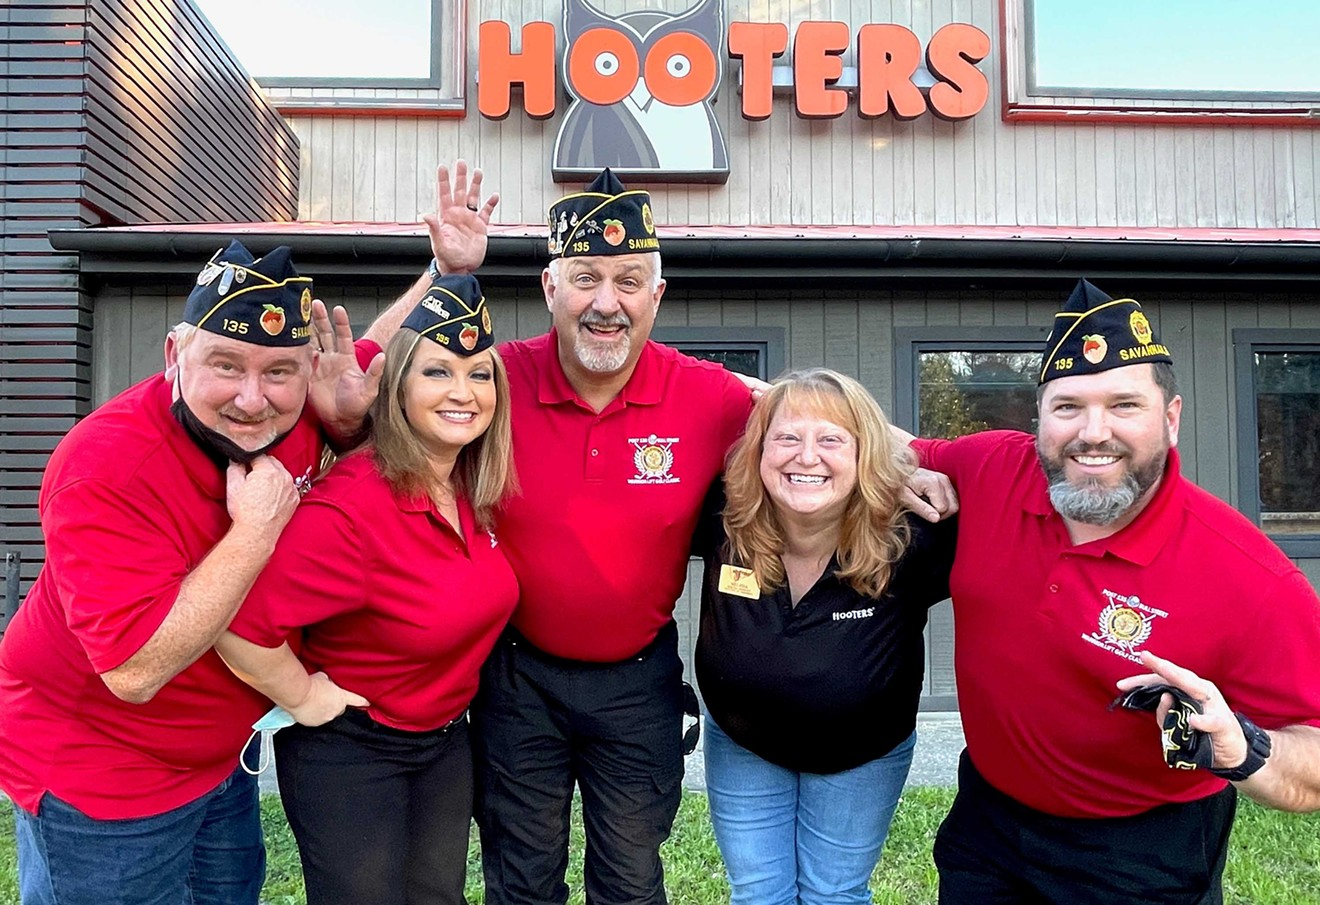 Members of the American Legion Post 135 celebrate Hooters' sponsorship of this year's event.